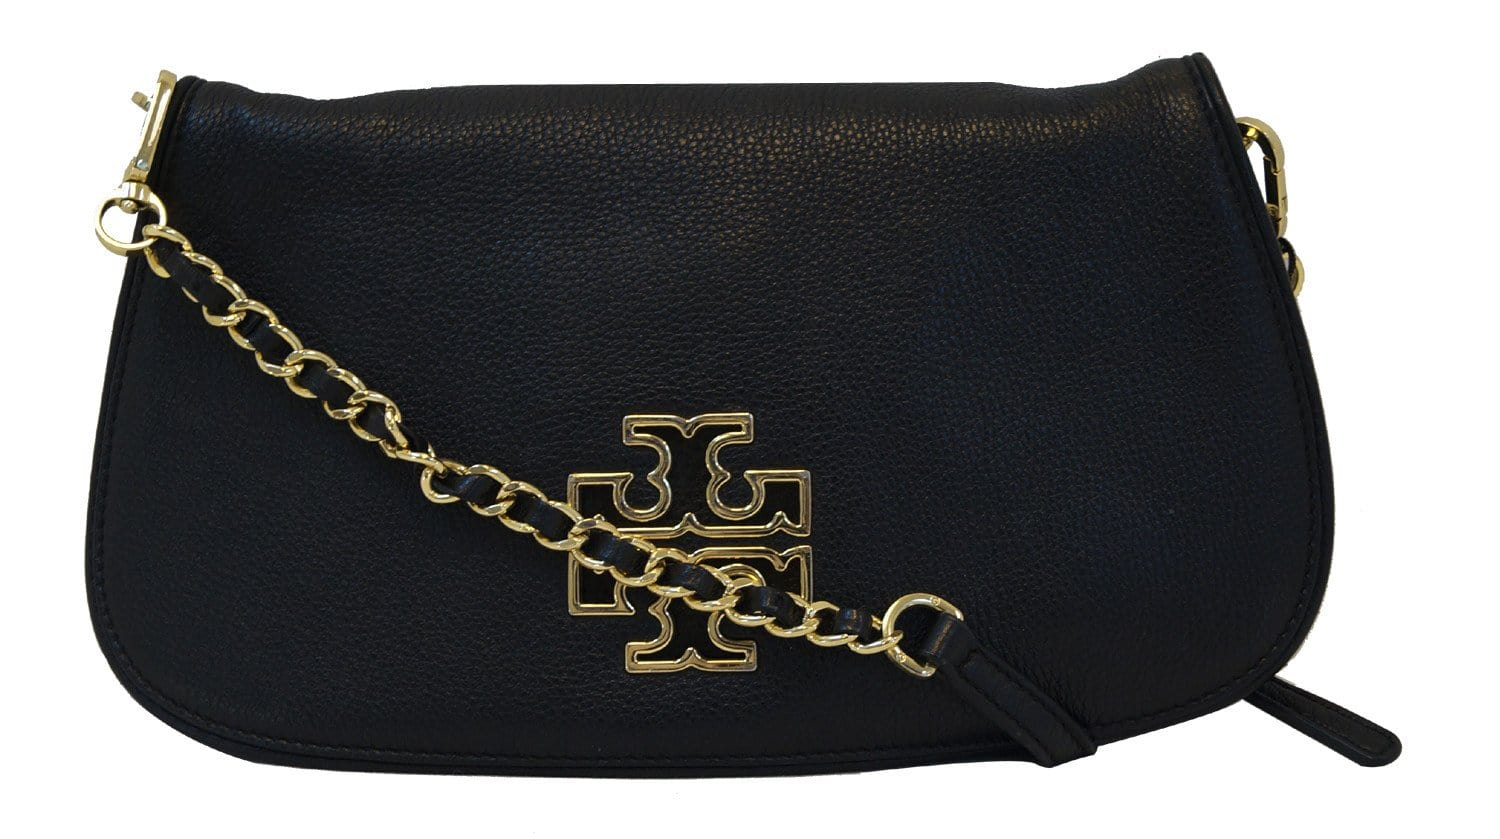 Authentic tory burch britten convertible black messenger crossbody bag authentic tory burch britten convertible black messenger crossbody bag tt933 buycottarizona Images